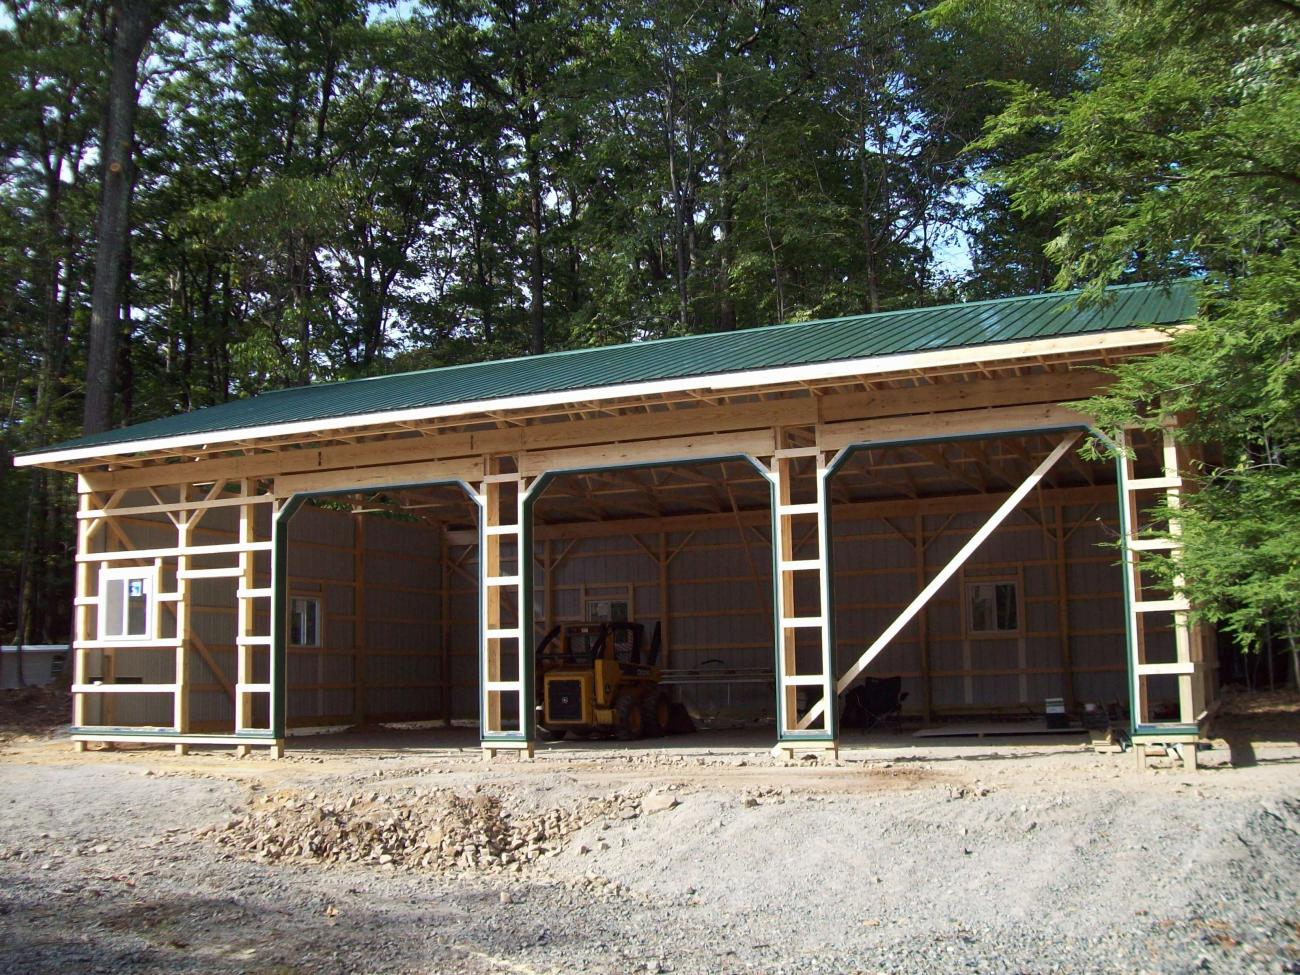 medium resolution of pole barn during construction with some siding and roofing added